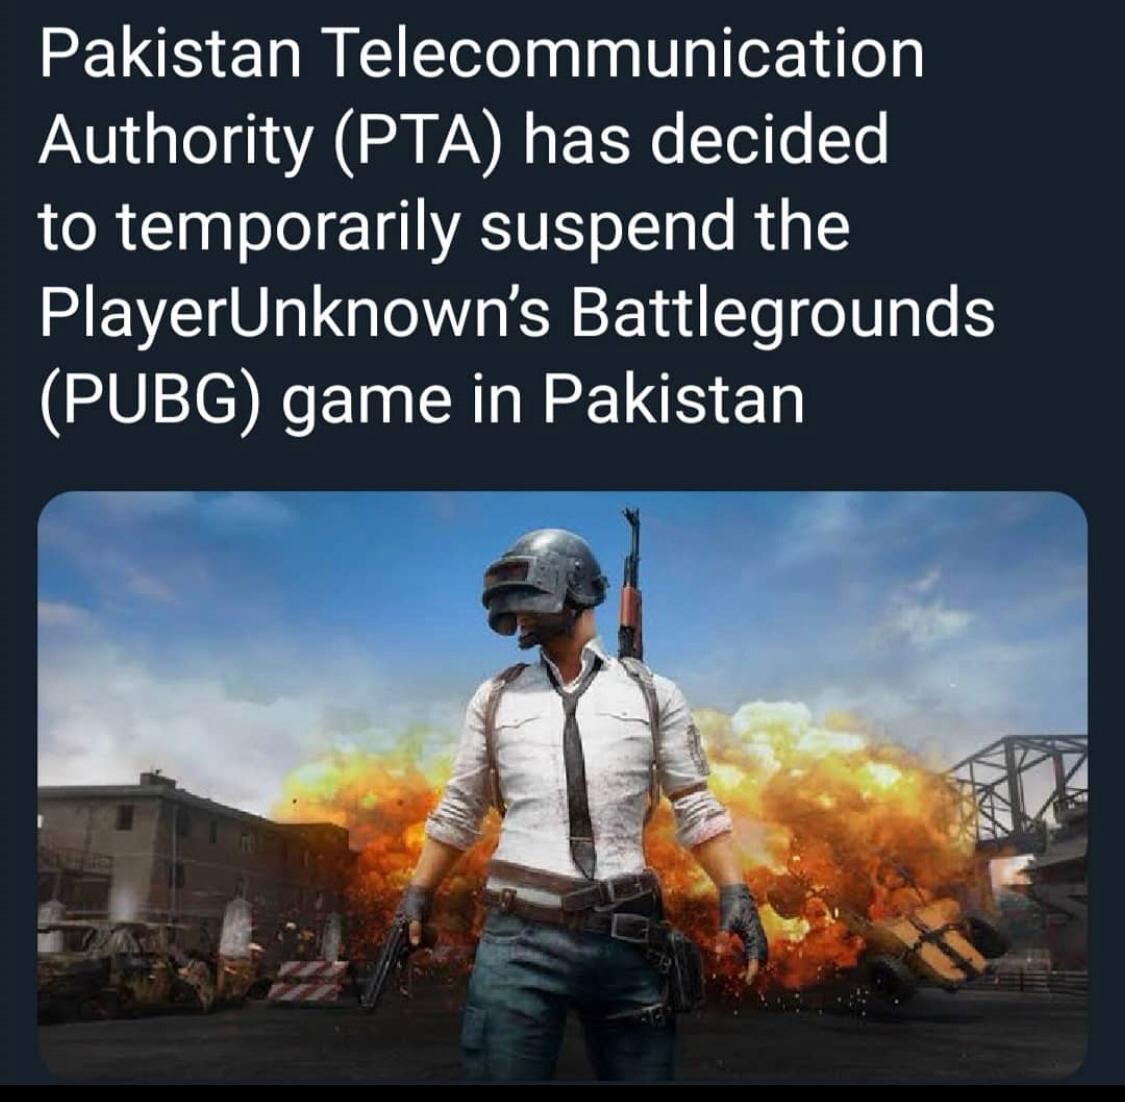 #PUBG Banned! Retweet Without Comment  if You are Satified on This Bane Retweet With Comment if You are not Satified #pubgban #nobanpubg #PUBGMOBILE pic.twitter.com/VeBDvaGXvT